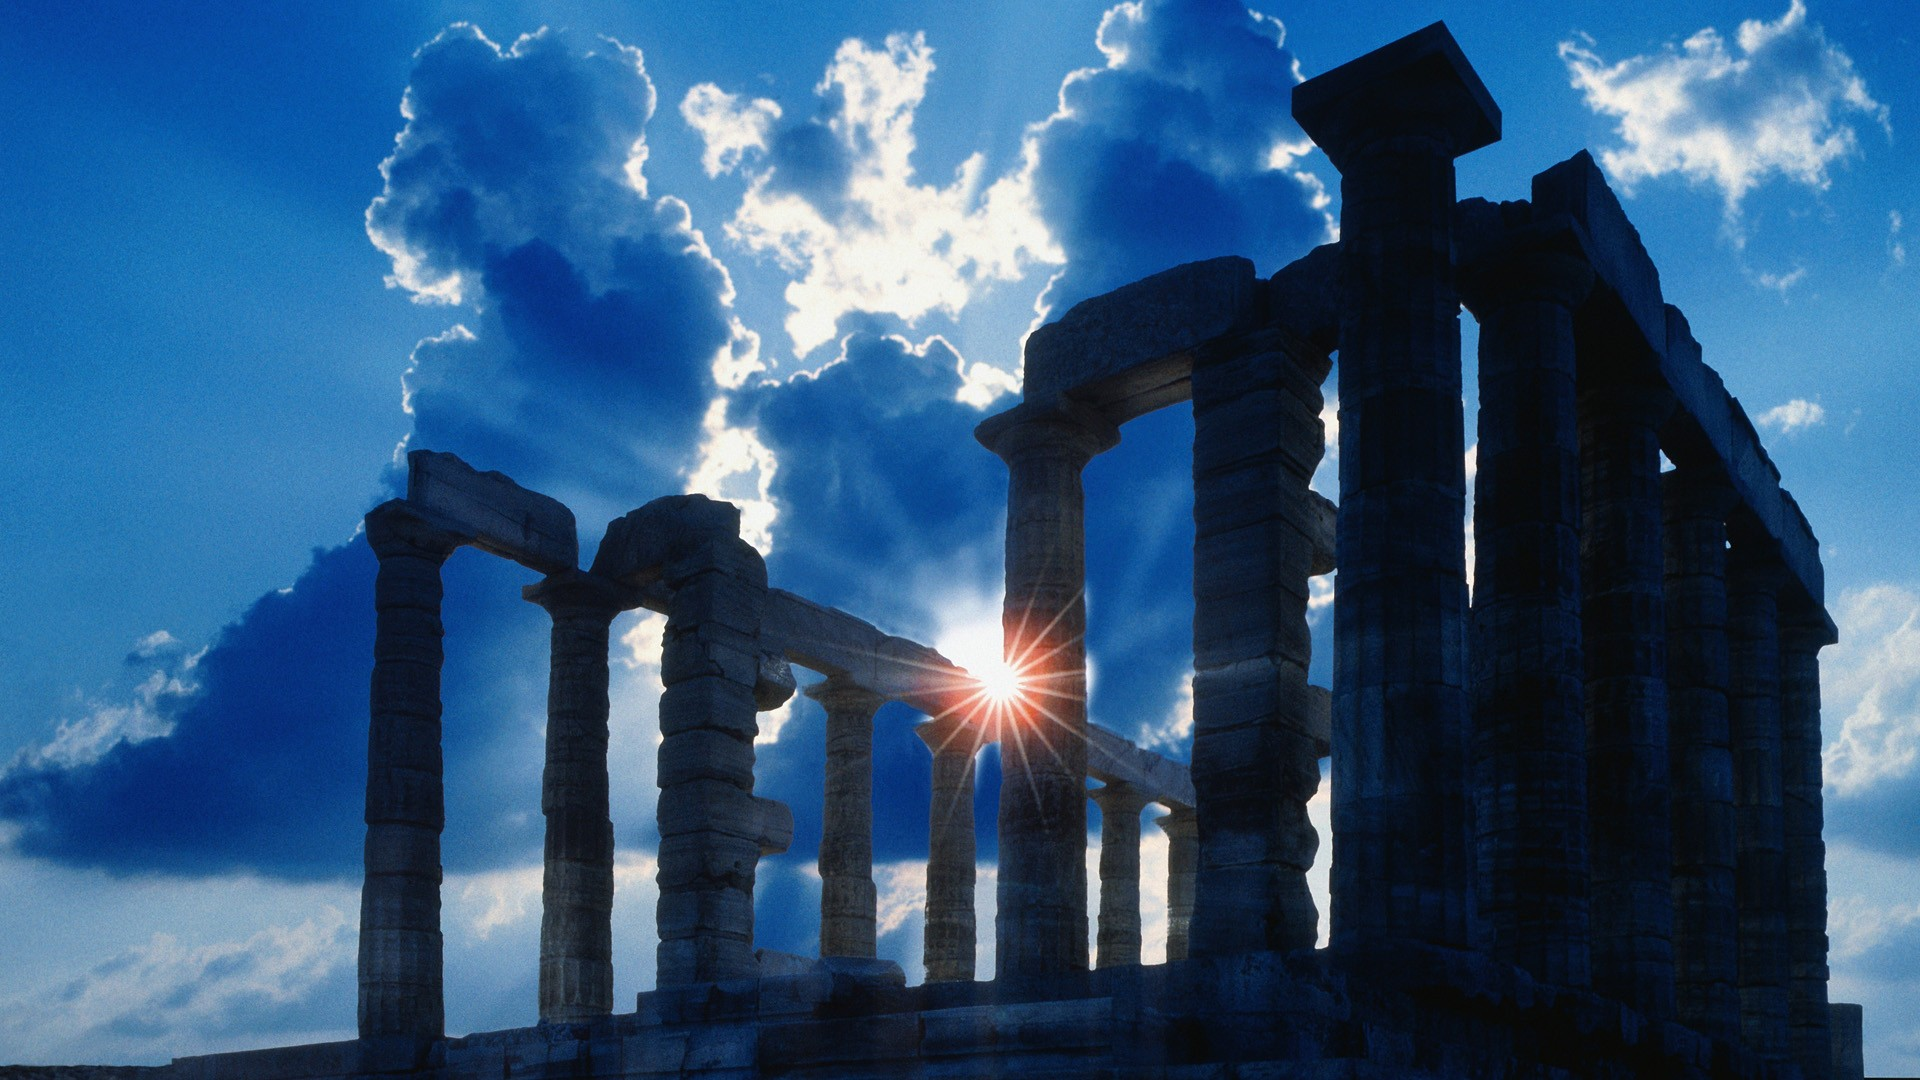 Greek architecture wallpapers best wallpapers for Best architecture wallpapers